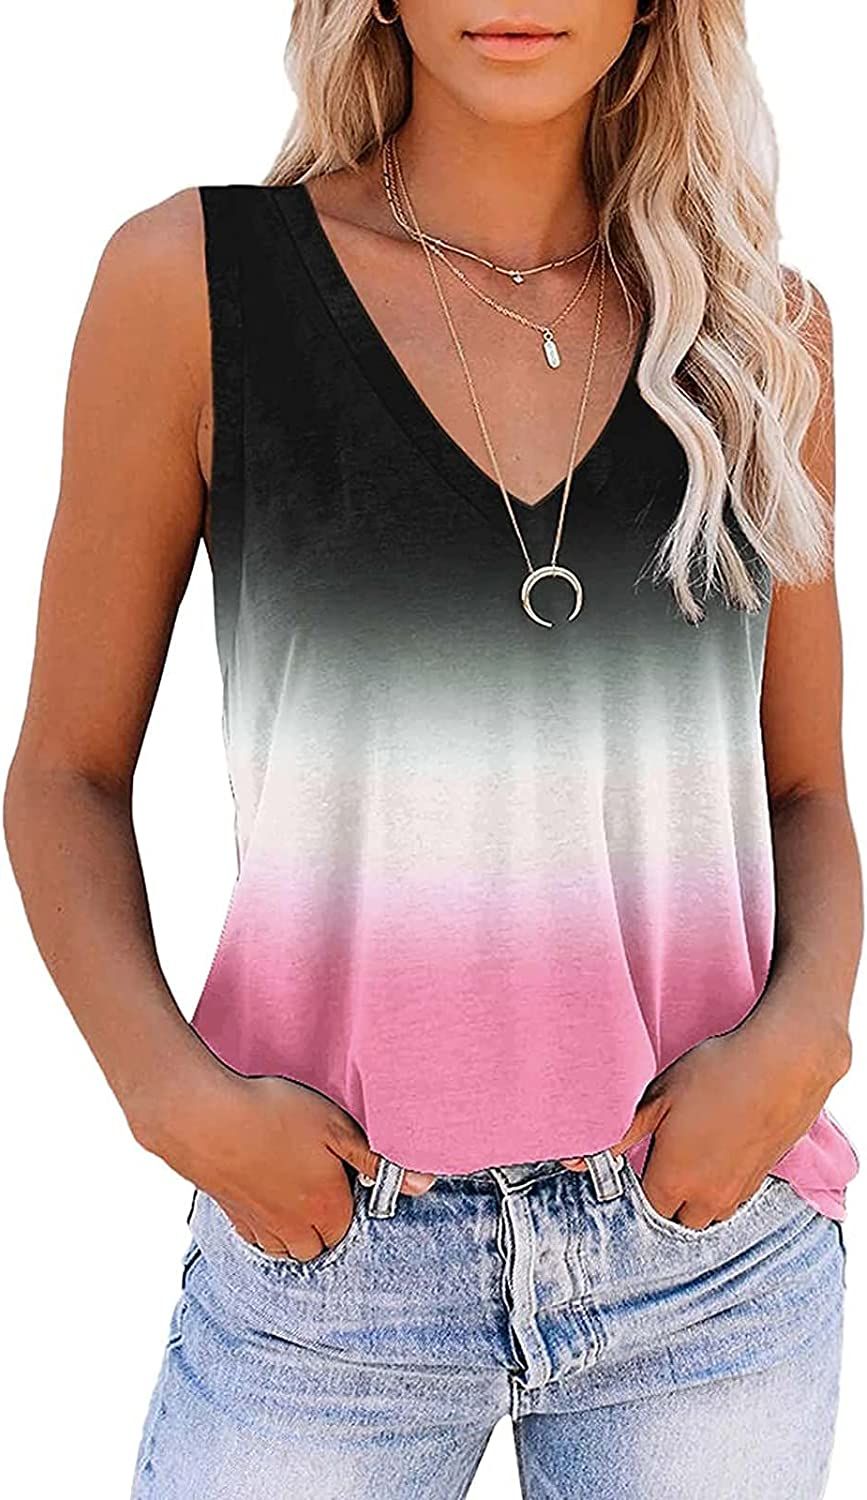 Jaqqra Tank Tops for Women Trendy V Neck Gradient Floral Tank Top Sleeveless Shirts Loose Workout Blouse Tops Tunic Tees